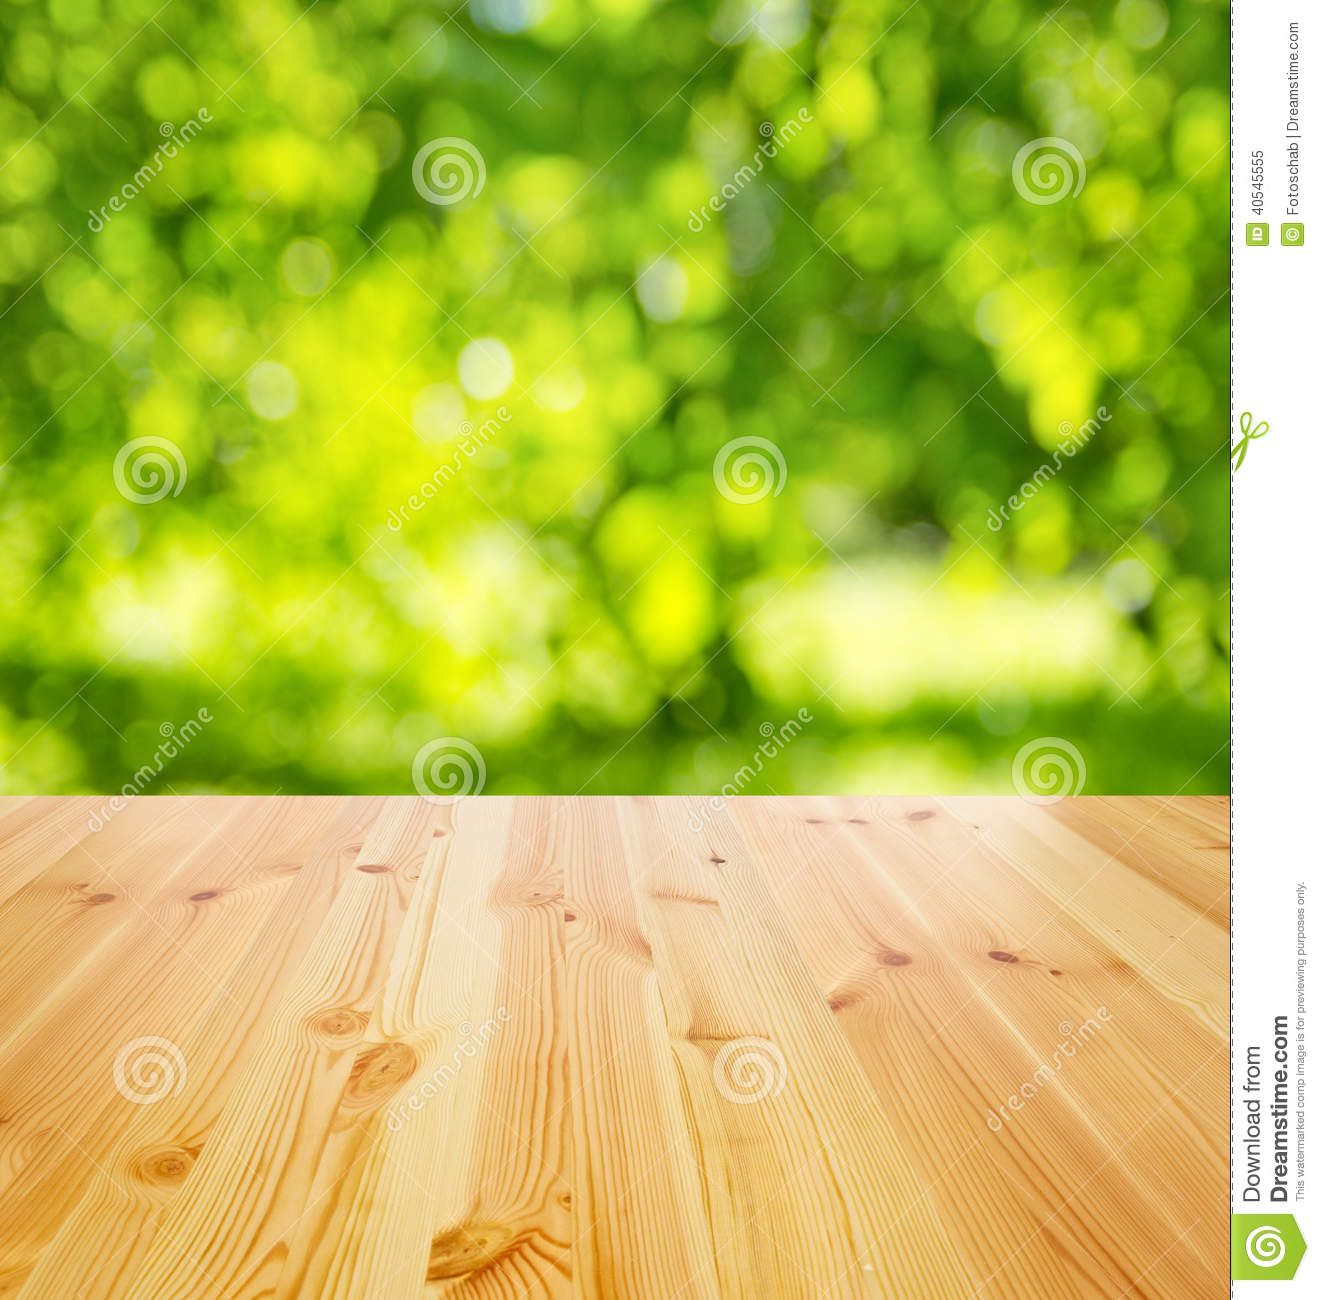 Empty Wooden Table Stock Photo Image 40545555